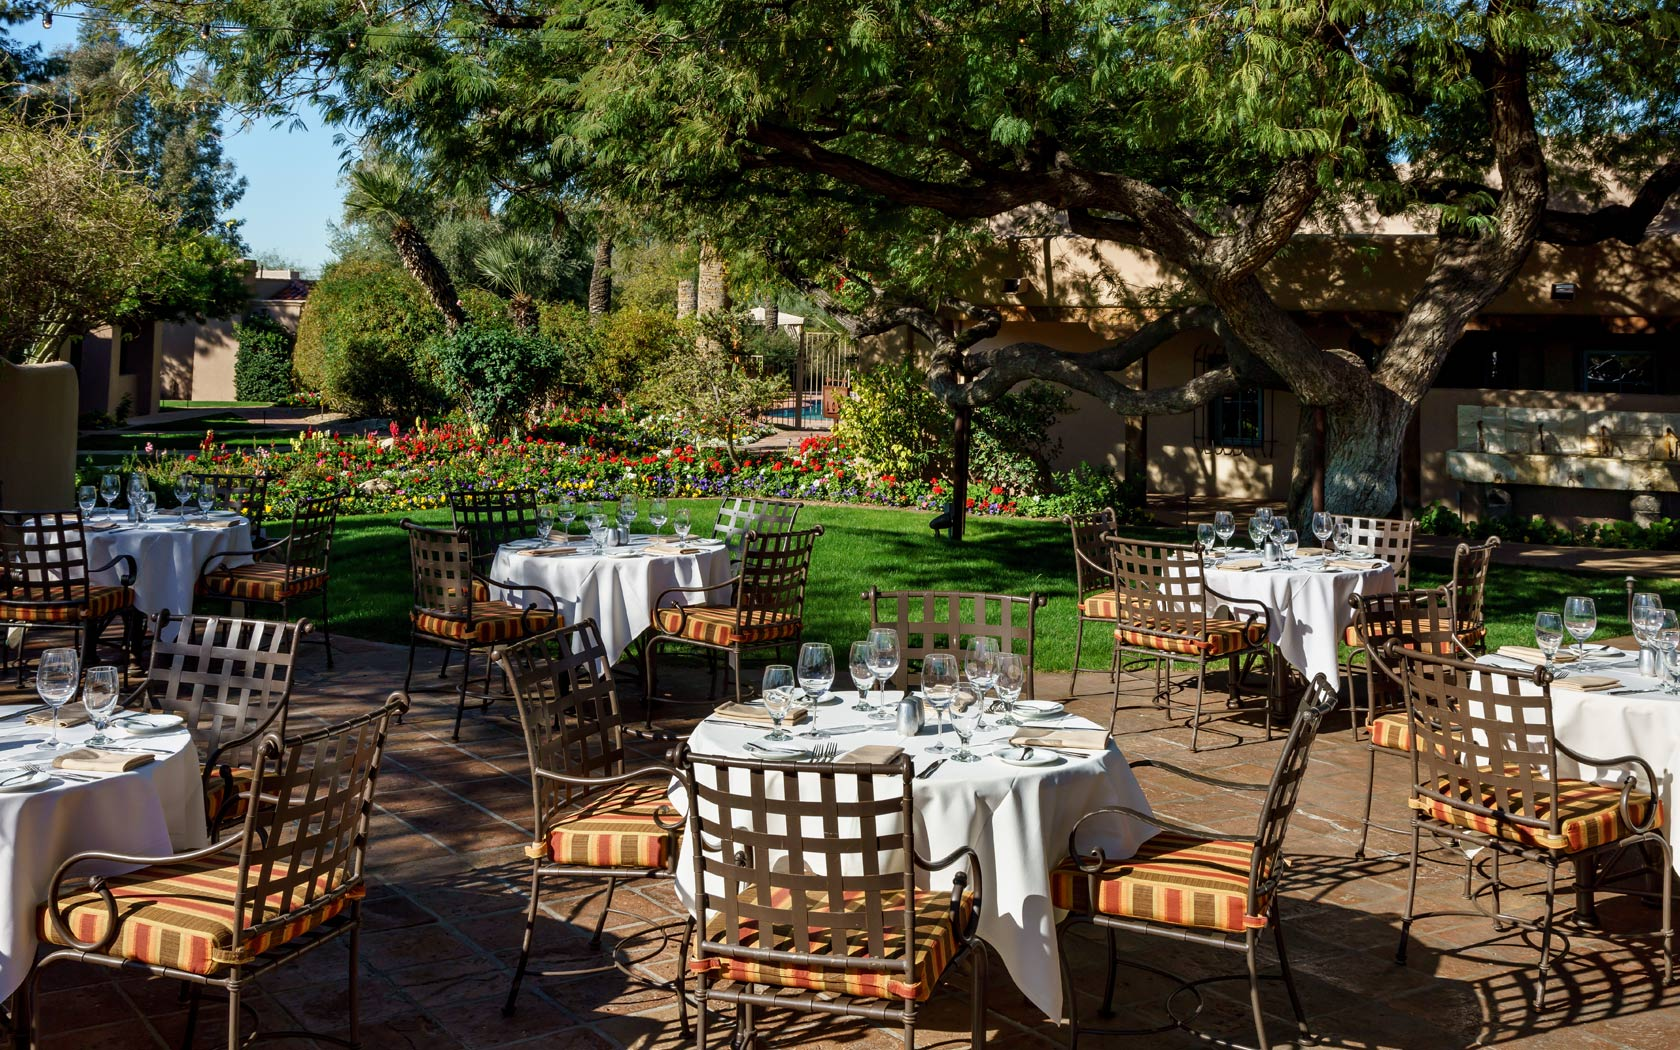 Outdoor Dining Area With Several Set Round Tables